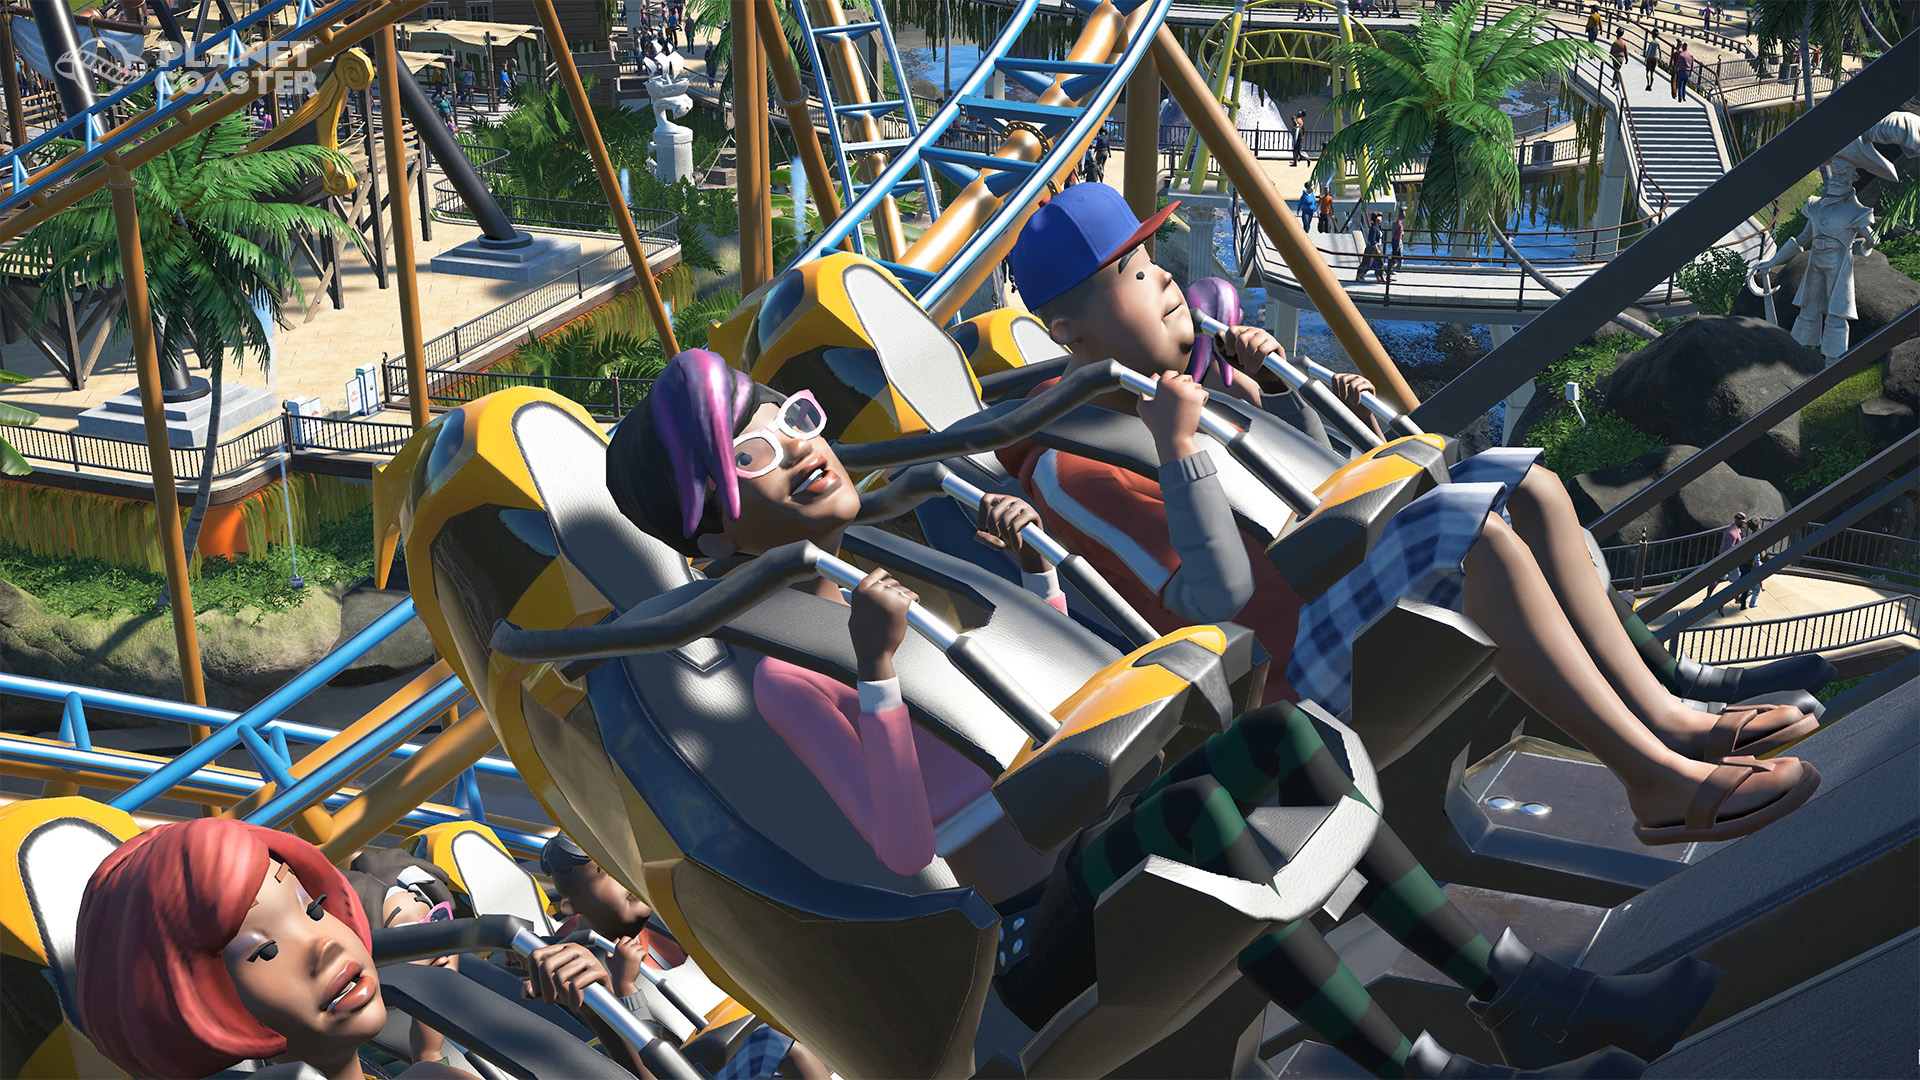 See RollerCoaster Tycoon Inspired Planet Coaster In Action ss b50d98818095d805e94756fe941bdc552e92325c.1920x1080